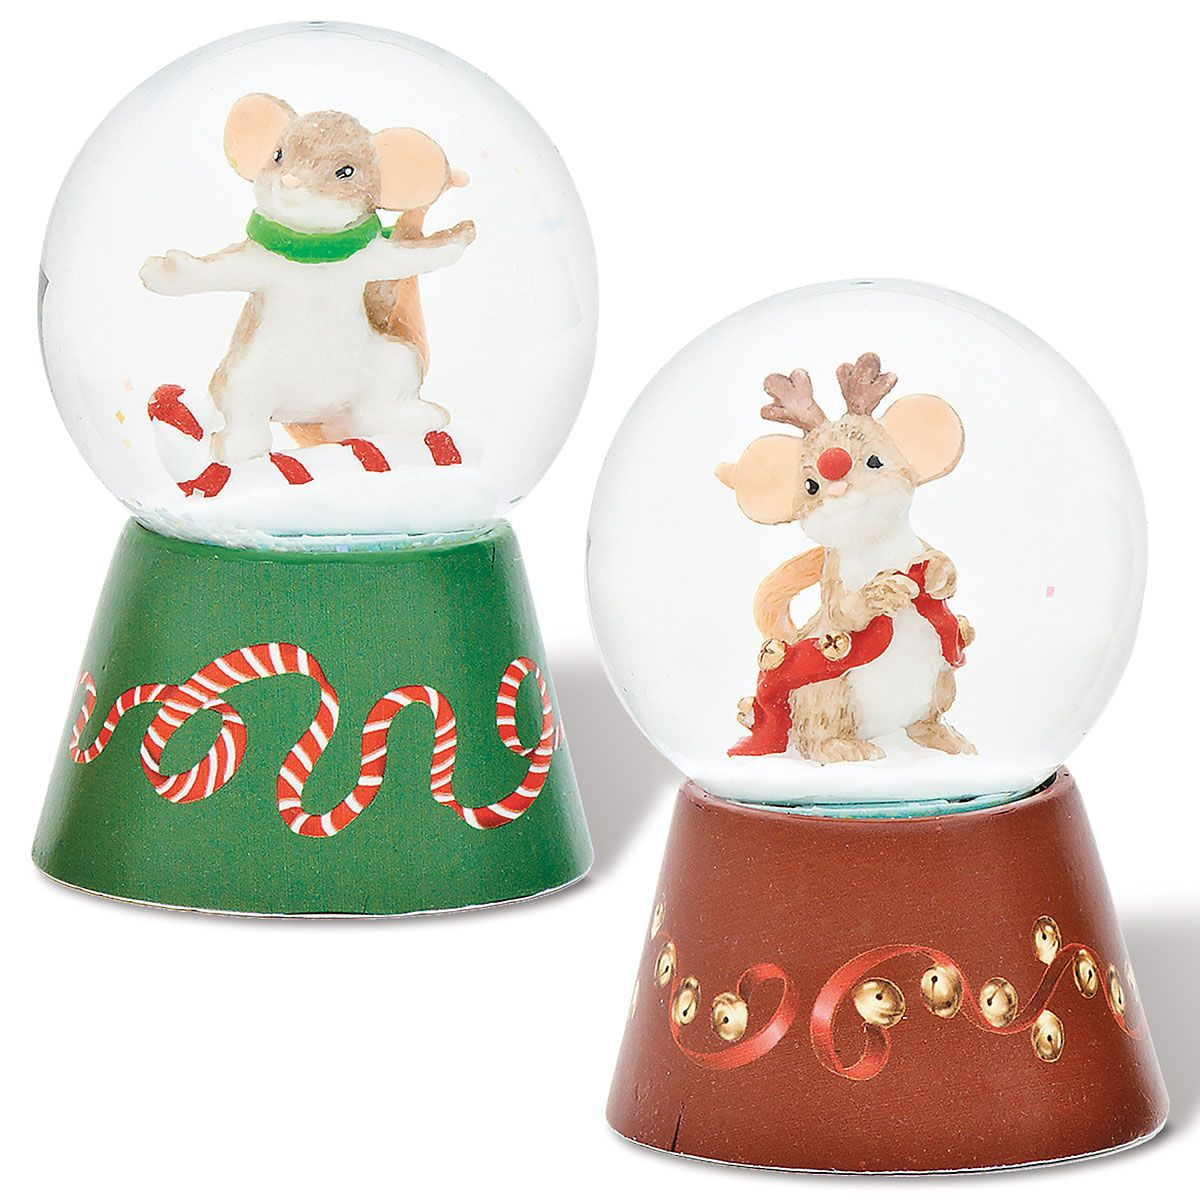 Red & Green Mini Dome Figurines by Charming Tails®